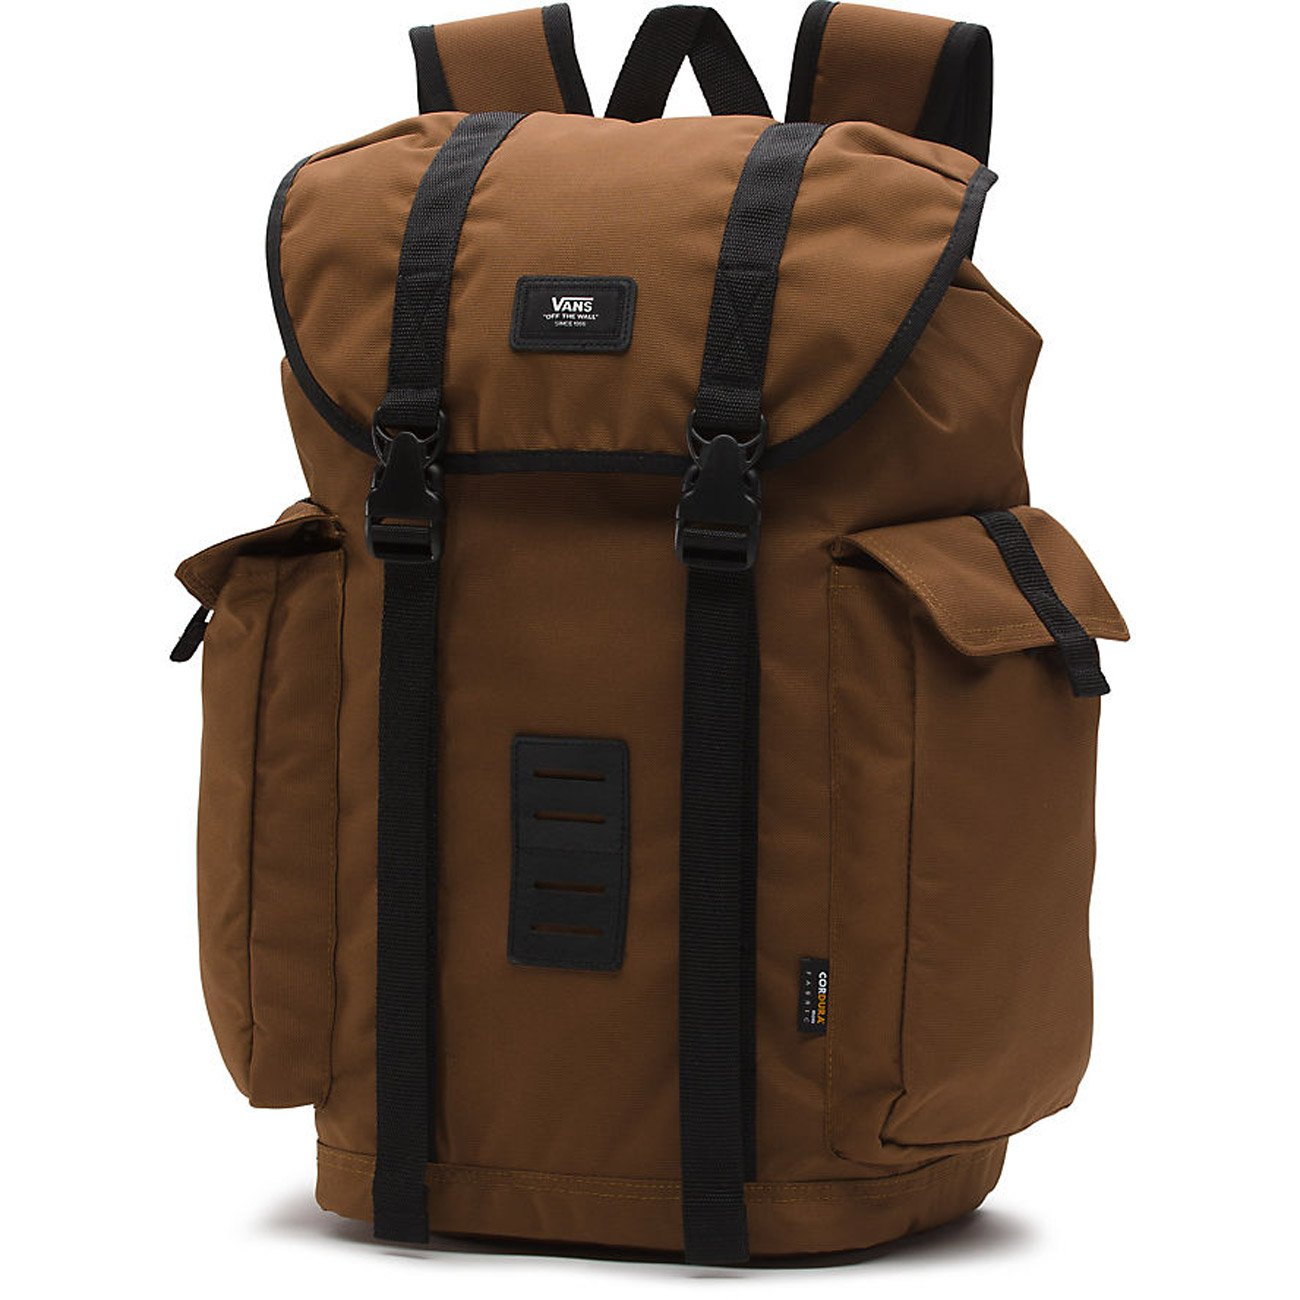 Vans OFF THE WALL BACKPACK Mochila tipo casual cm liters Marrón Toffee